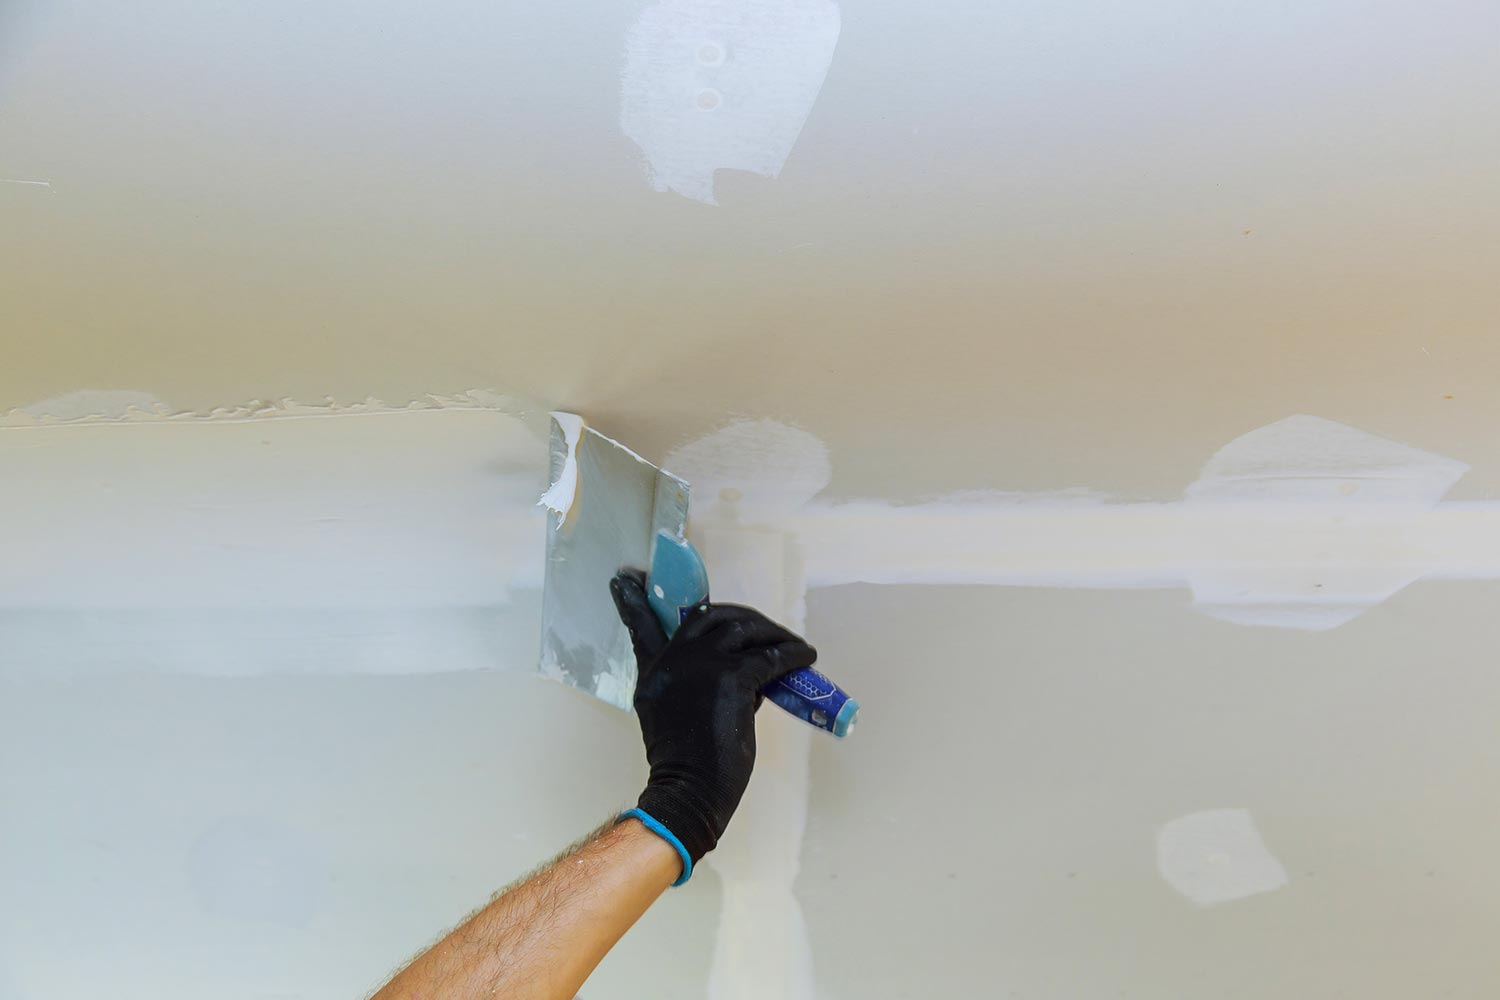 Worker puttied wall using a paint spatula